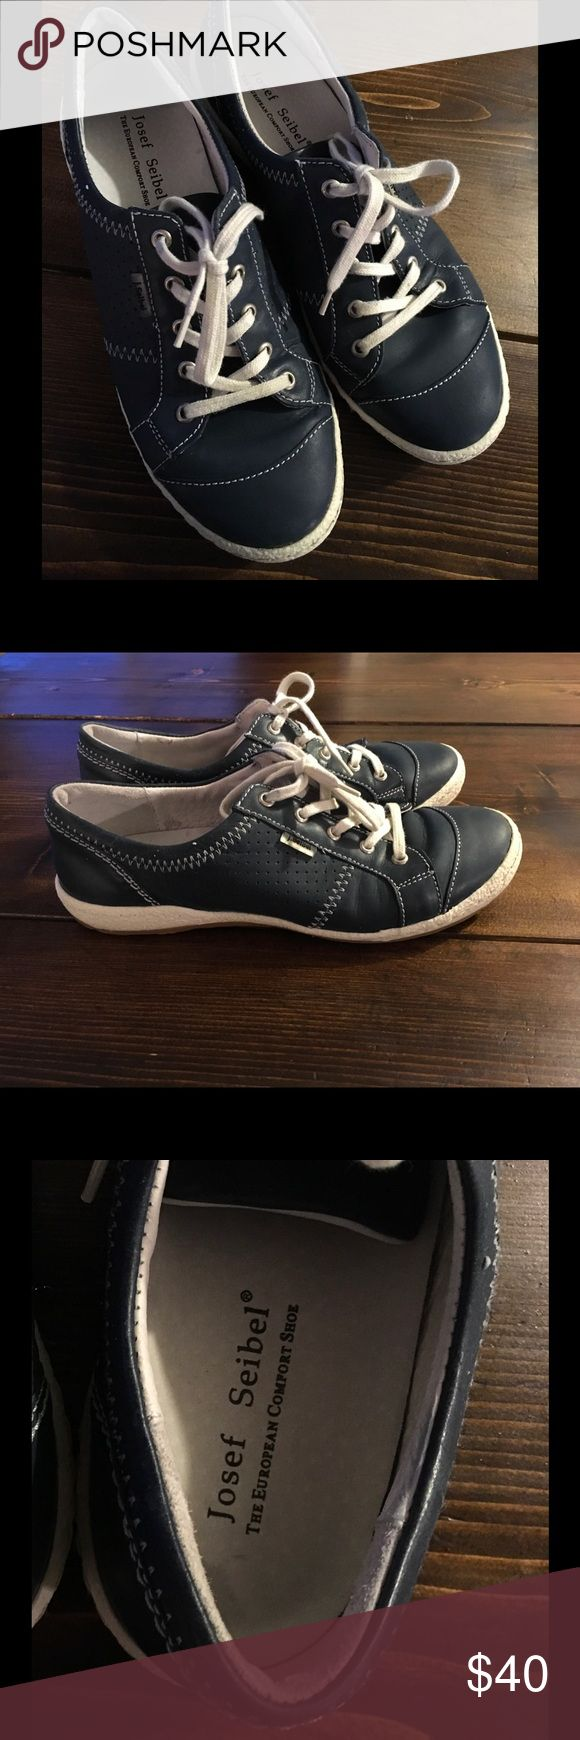 Josef Seibel Caspian Sneaker - European chic shoe Navy leather sneaker... amazingly comfortable. This is my second pair but they fit a little snug, more like a US size 8. Josef Seibel Shoes Sneakers